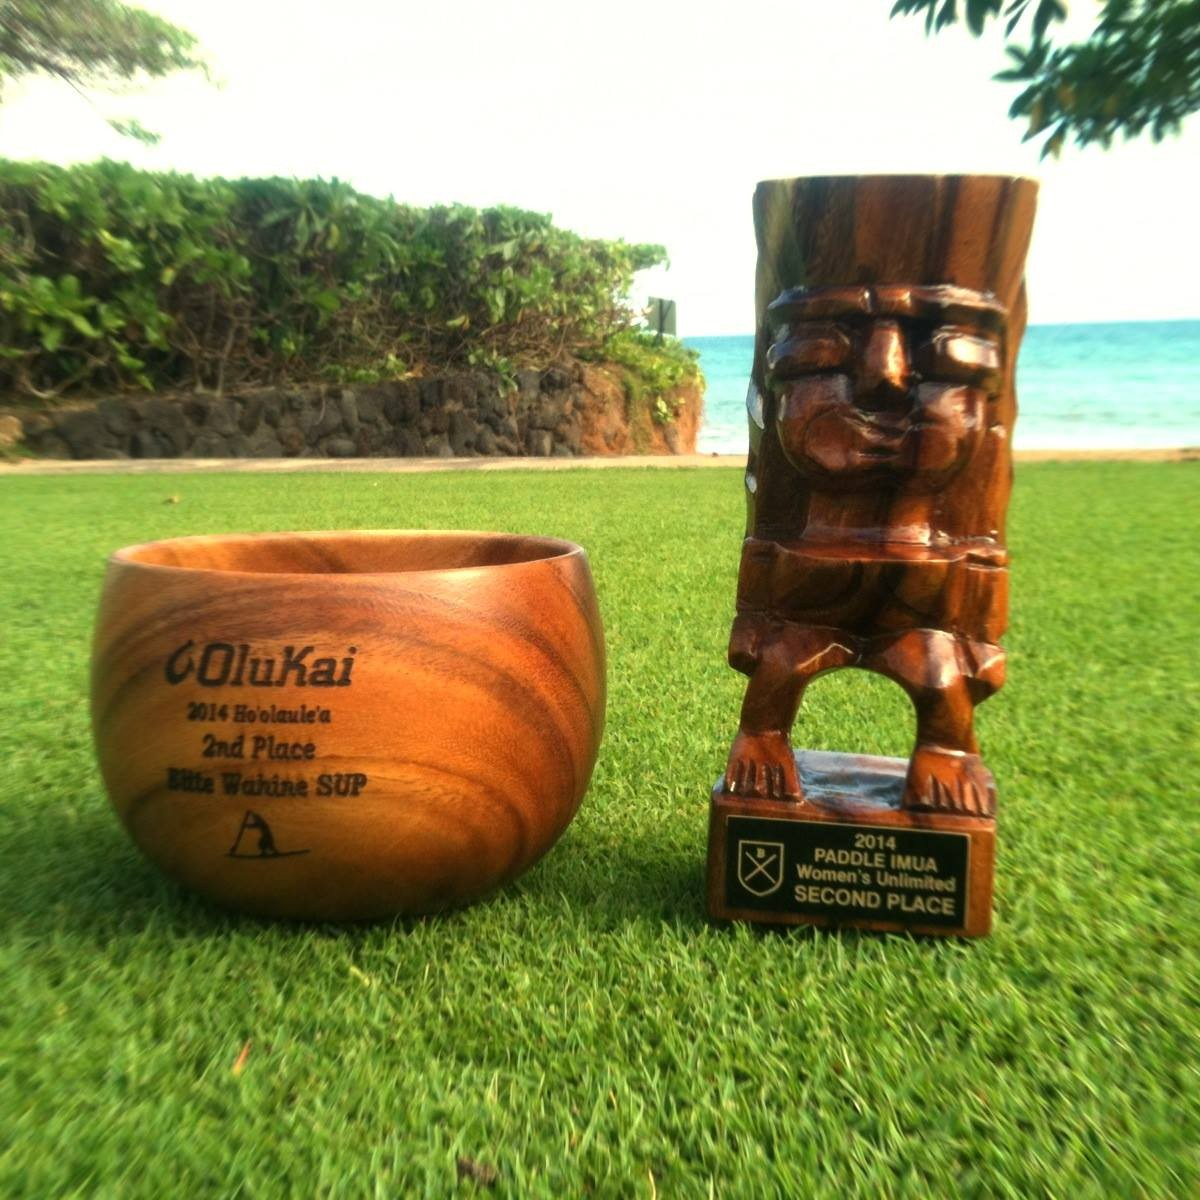 trophies of Maui downwind races 2014